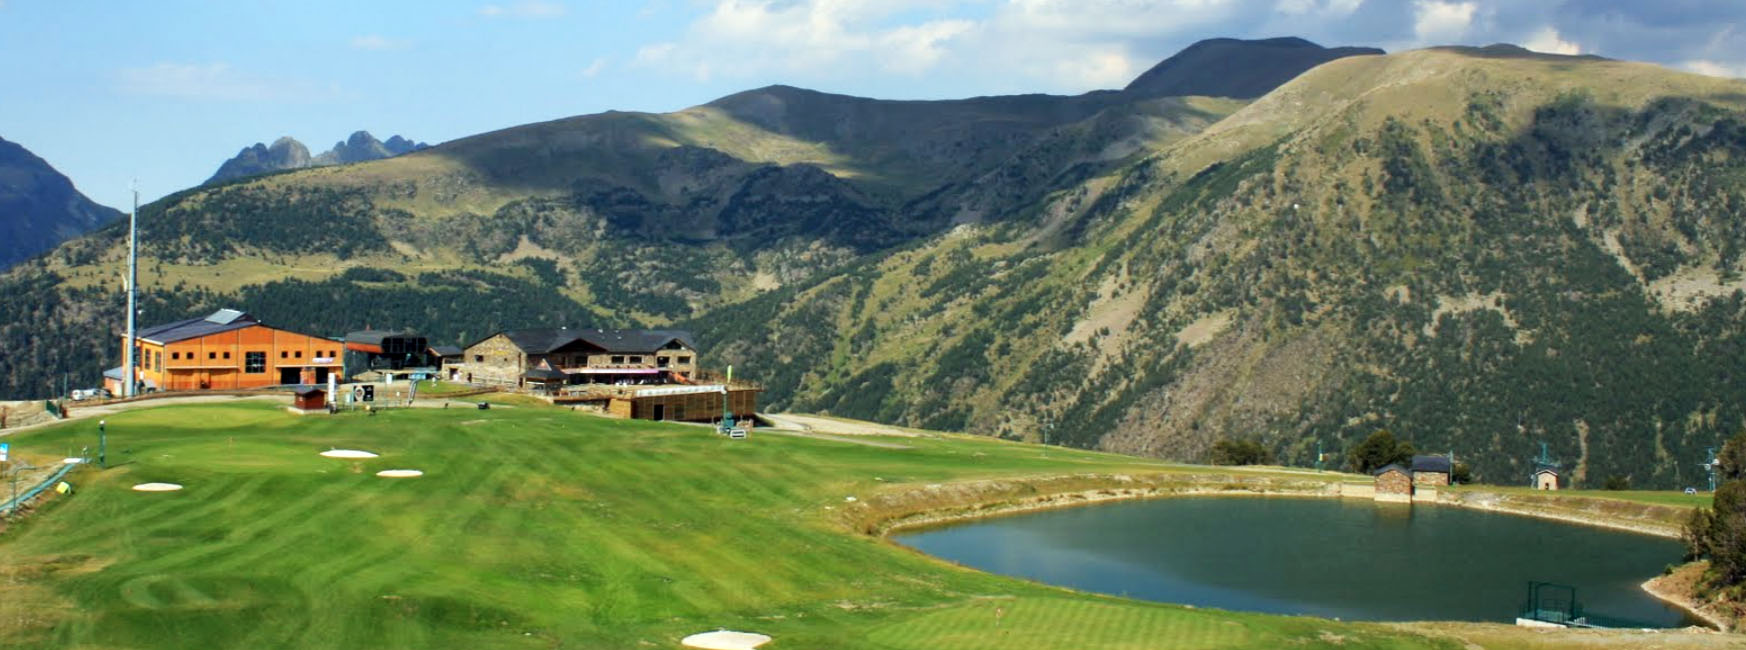 golf in andorra2